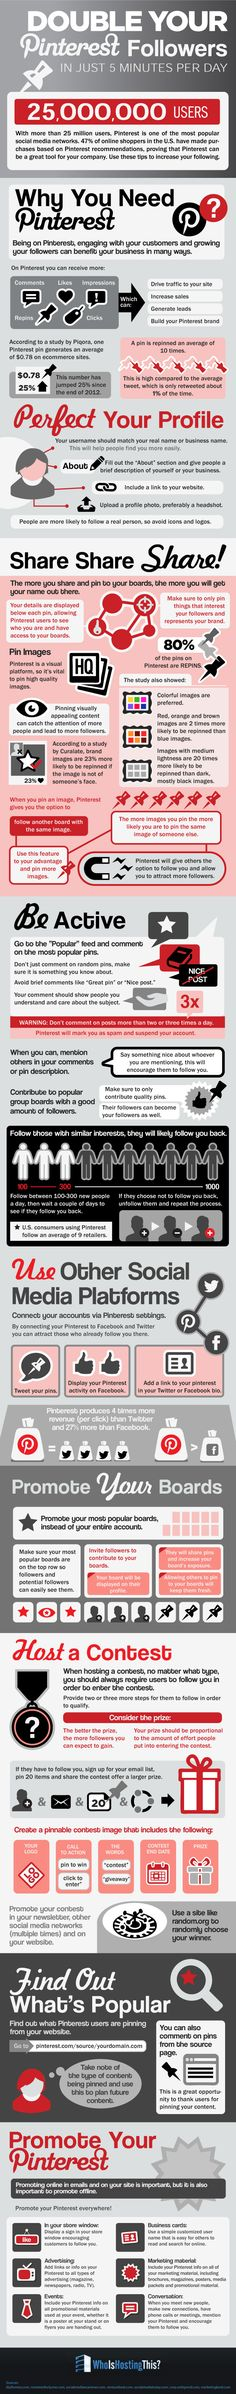 Double Your Pinterest Followers In Just 5 Minutes a Day [Infographic] http://socialmarketingwriting.com/double-your-pinterest-followers-in-just-5-minutes-a-day-infographic/